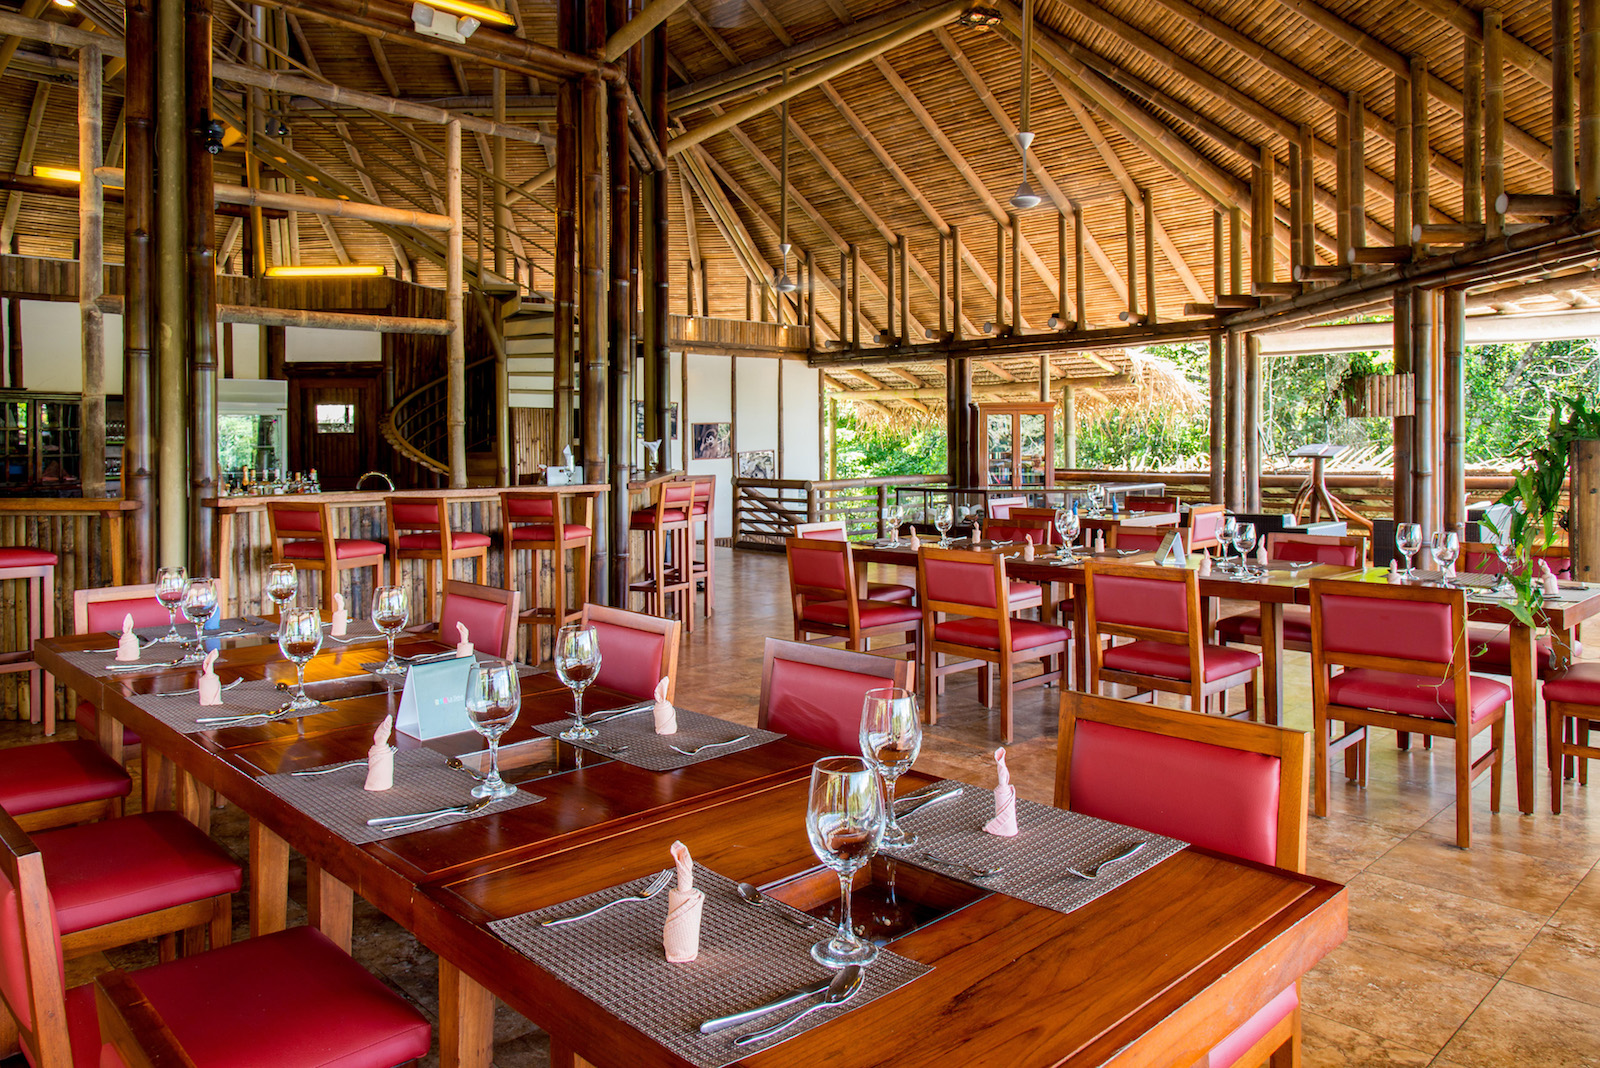 Restaurant La selva lodge - Yasuni Rainforest Lodges